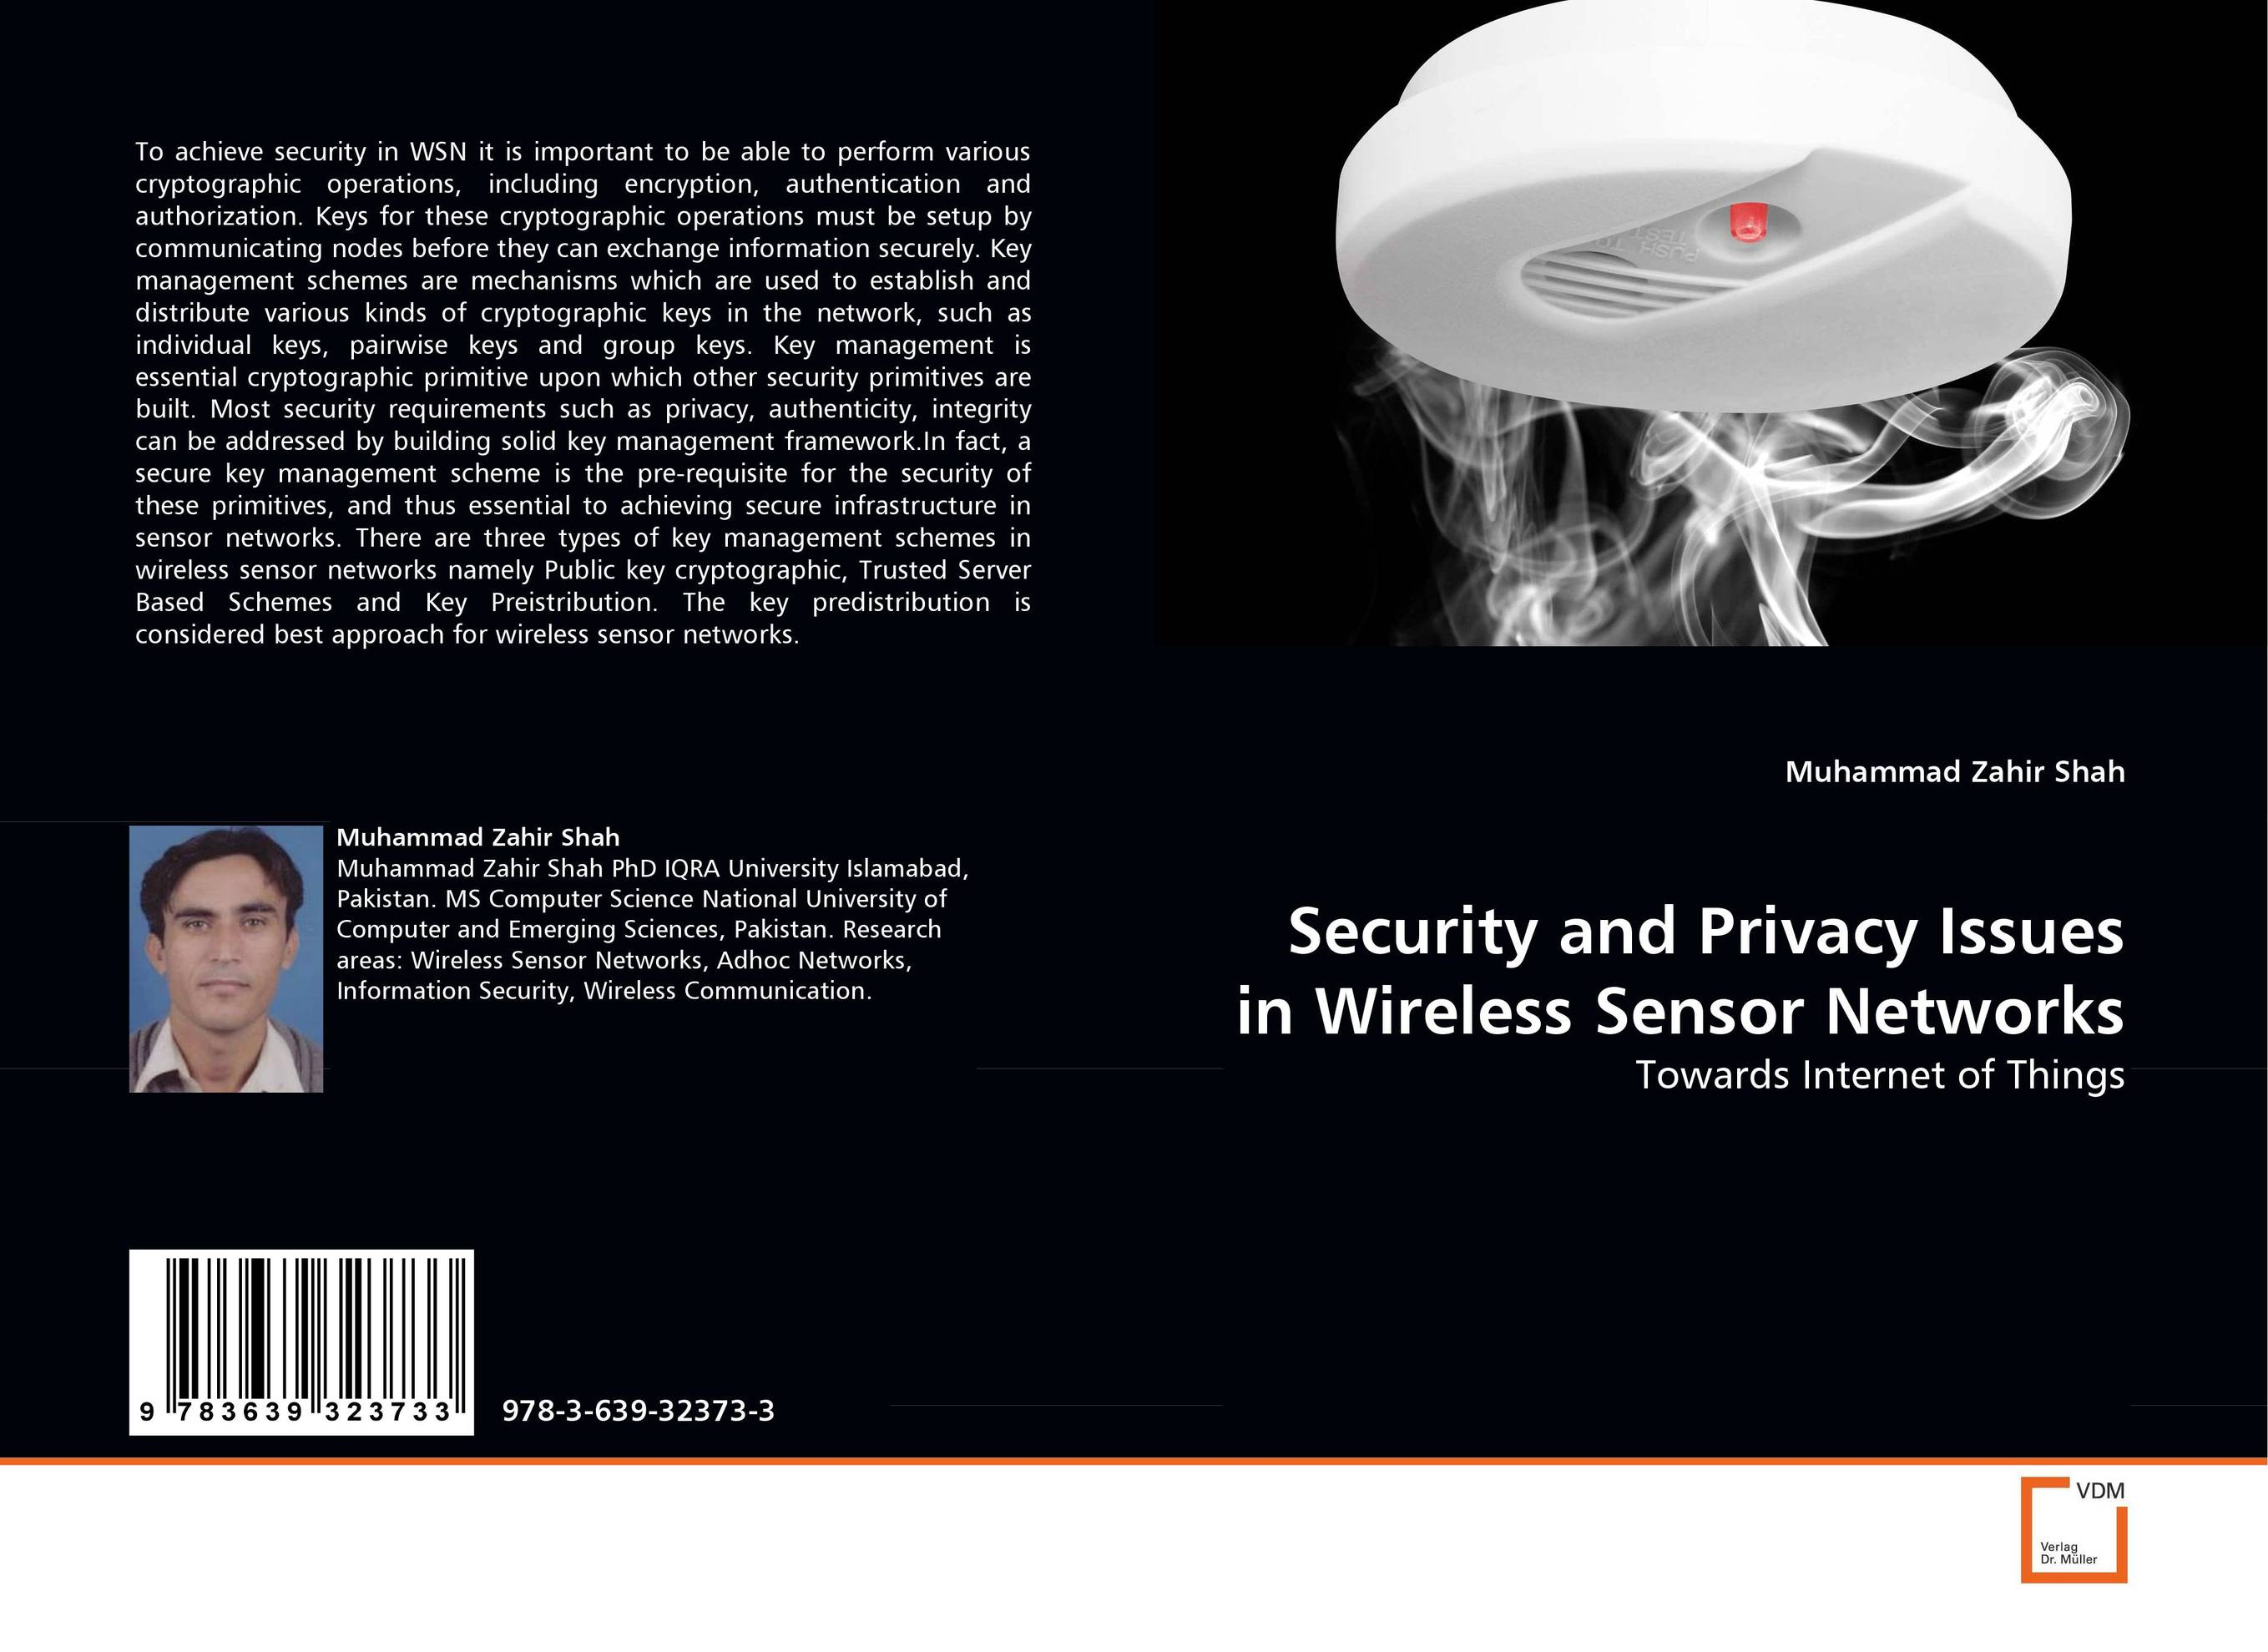 Security and Privacy Issues in Wireless Sensor Networks warren greshes the best damn management book ever 9 keys to creating self motivated high achievers